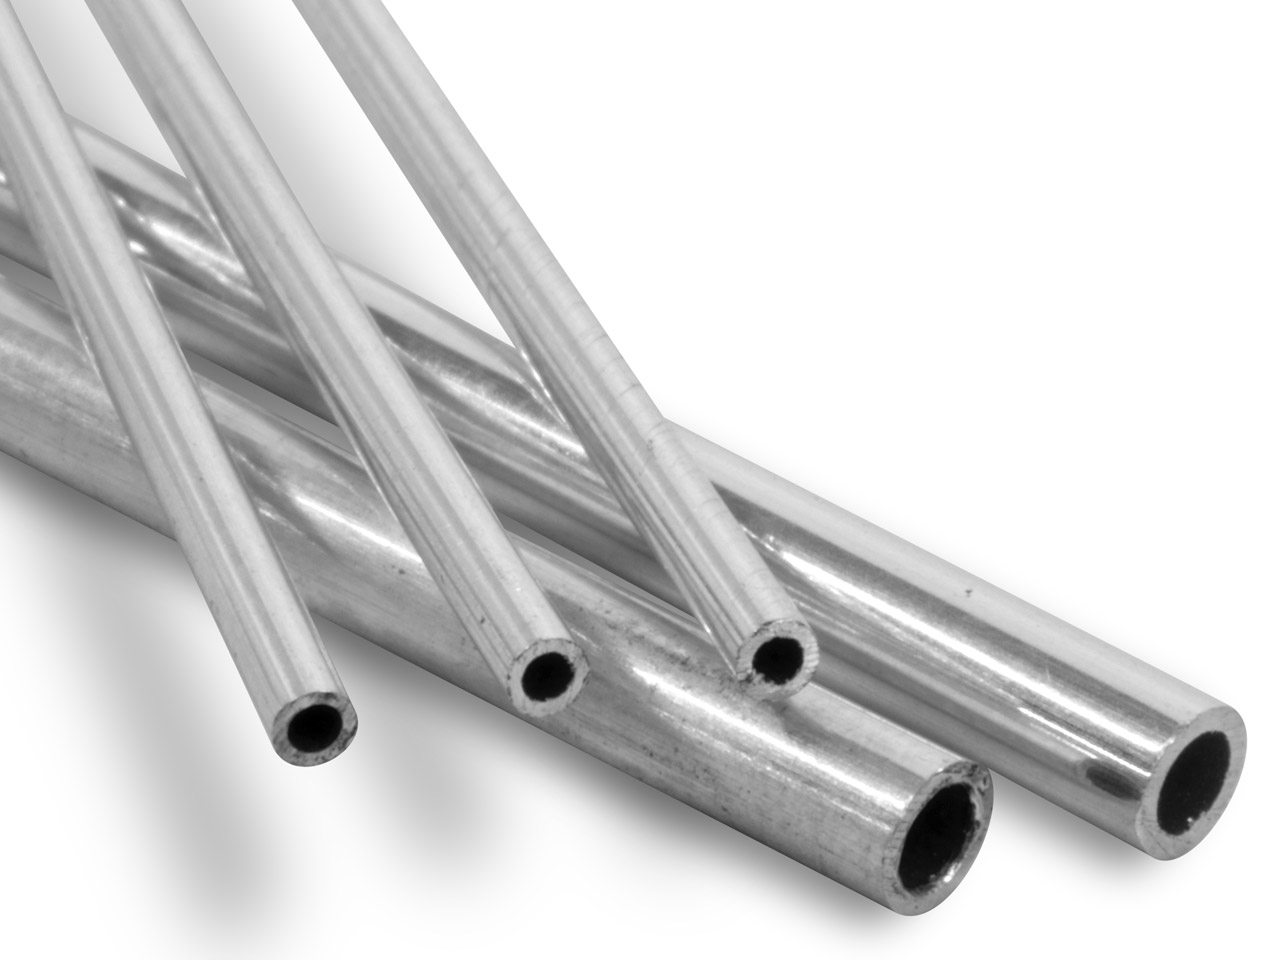 Sterling Silver Tube, Ref 3,       Outside Diameter 4.0mm,            Inside Diameter 3.0mm, 0.5mm Wall  Thickness